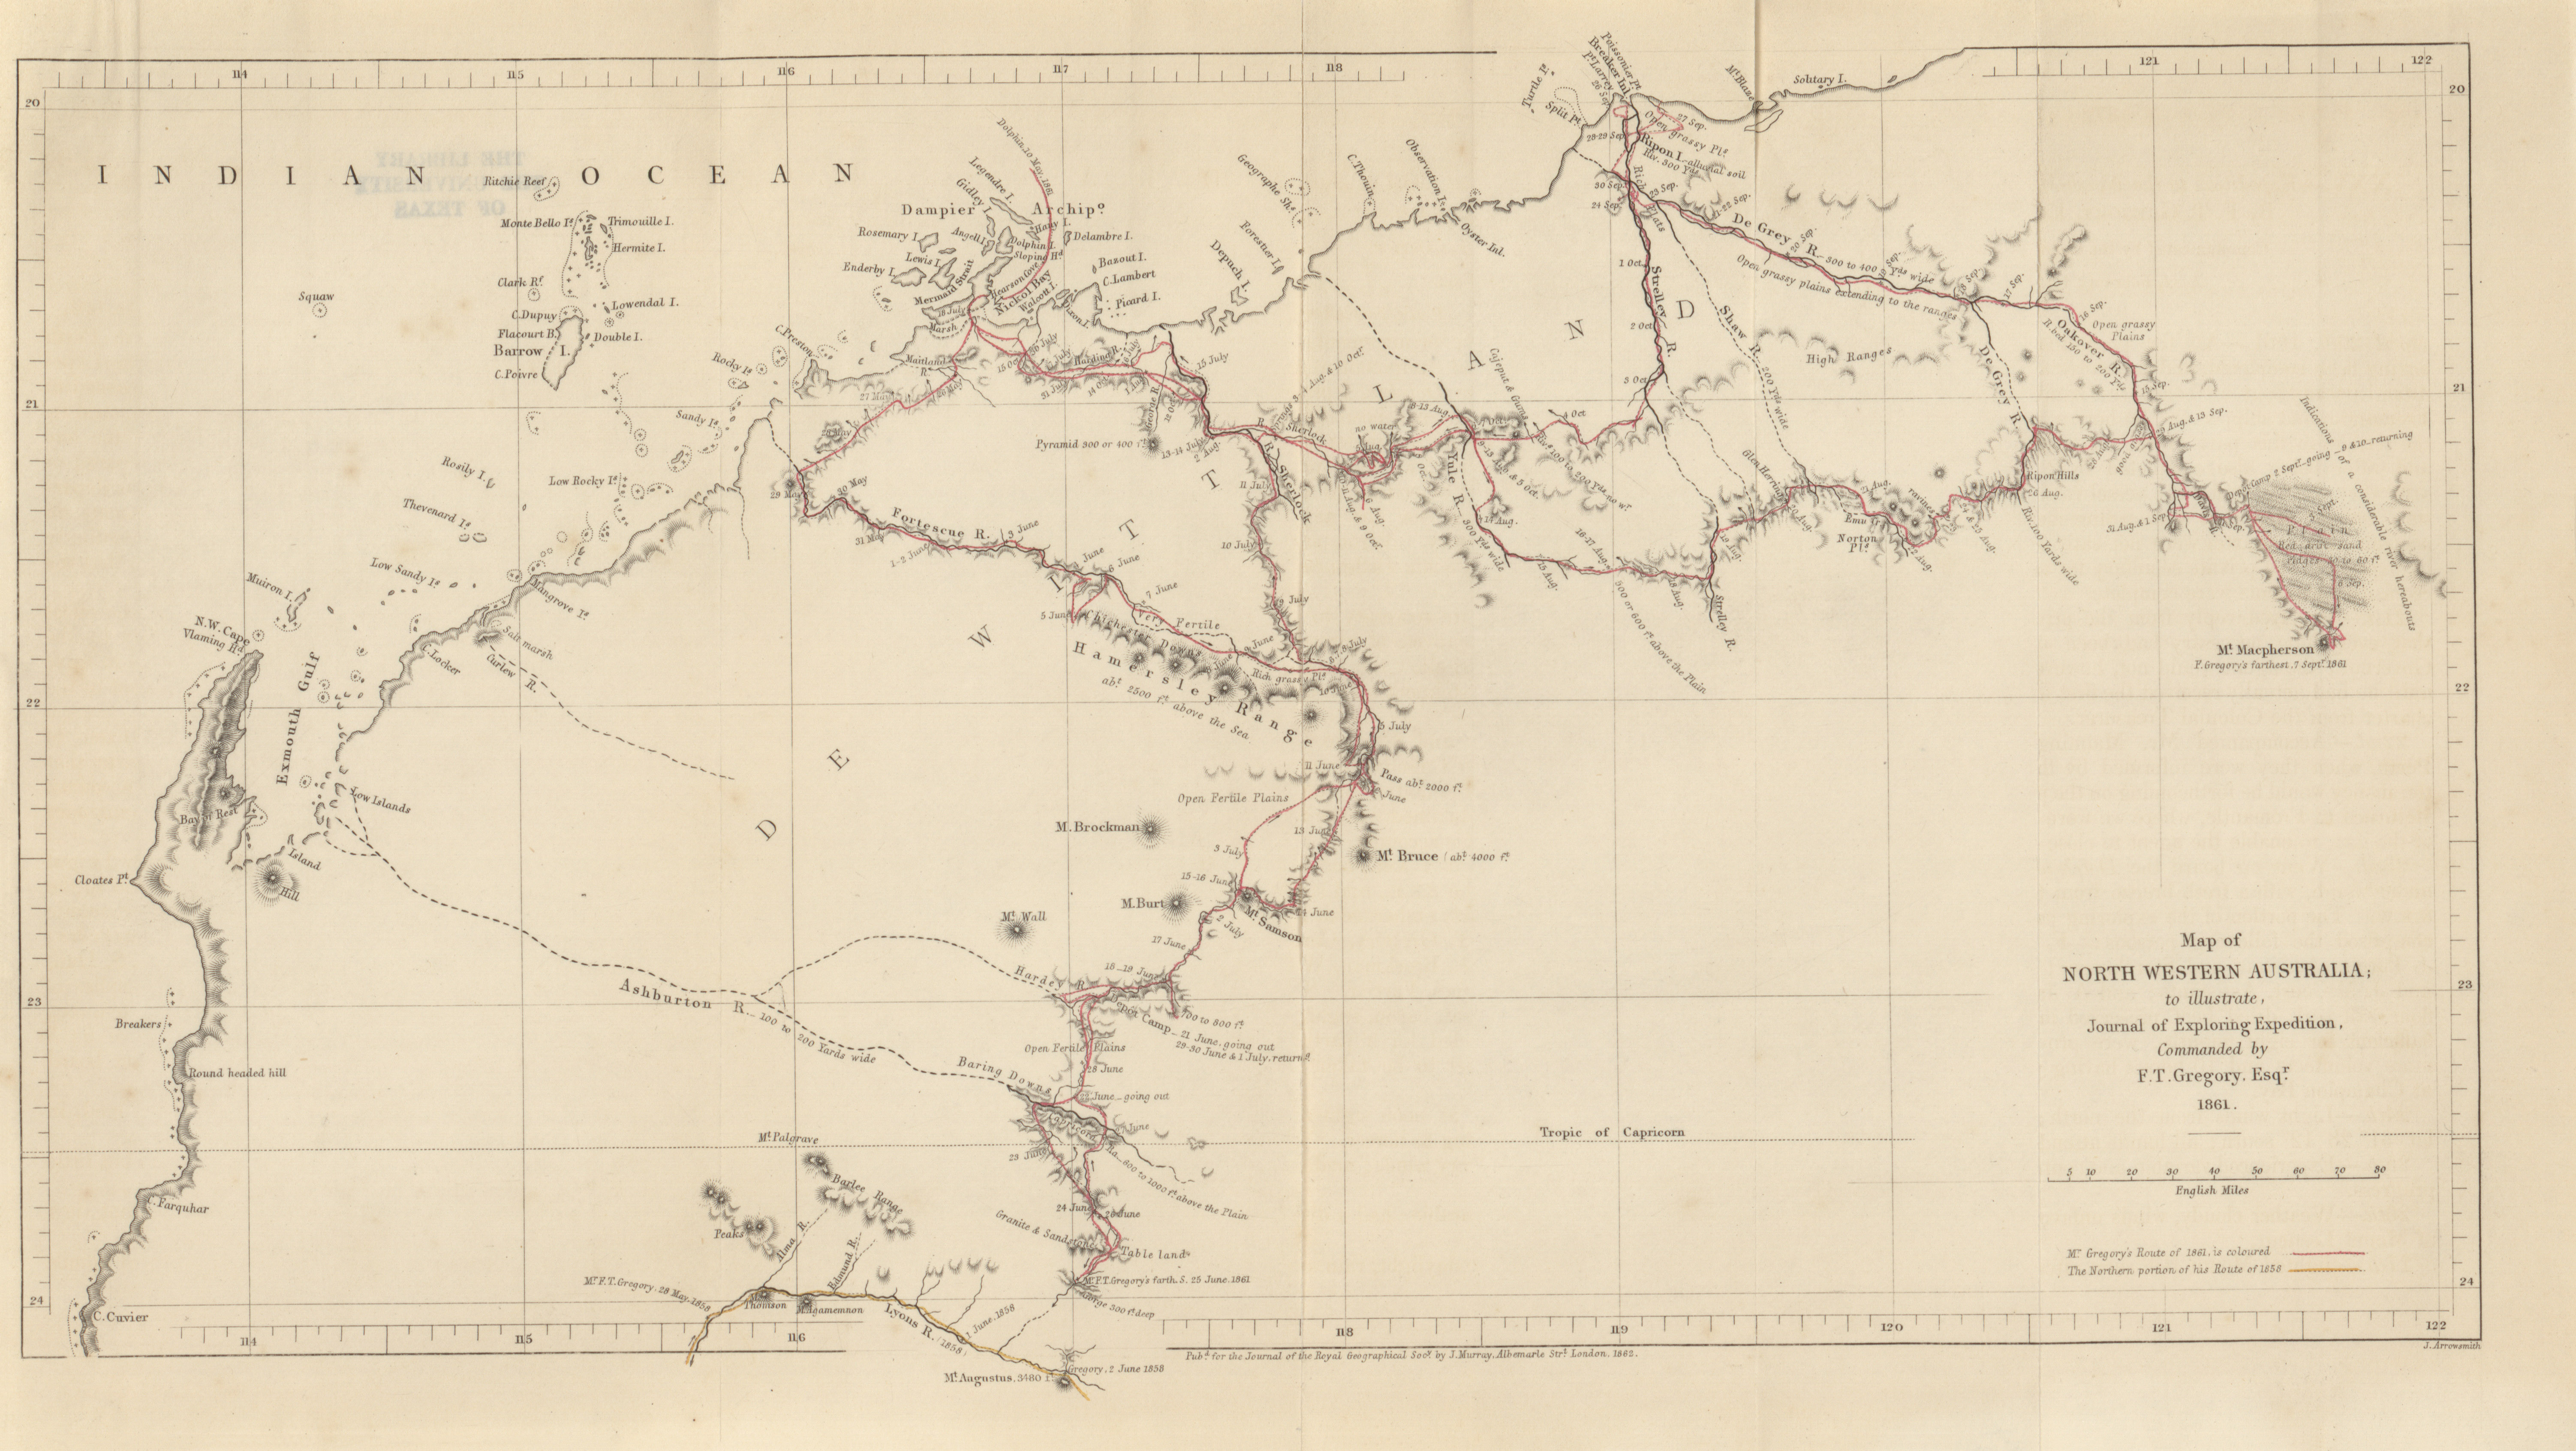 North Western Australia To Ilrate Journal Of Exploring Expedition F T Gregory